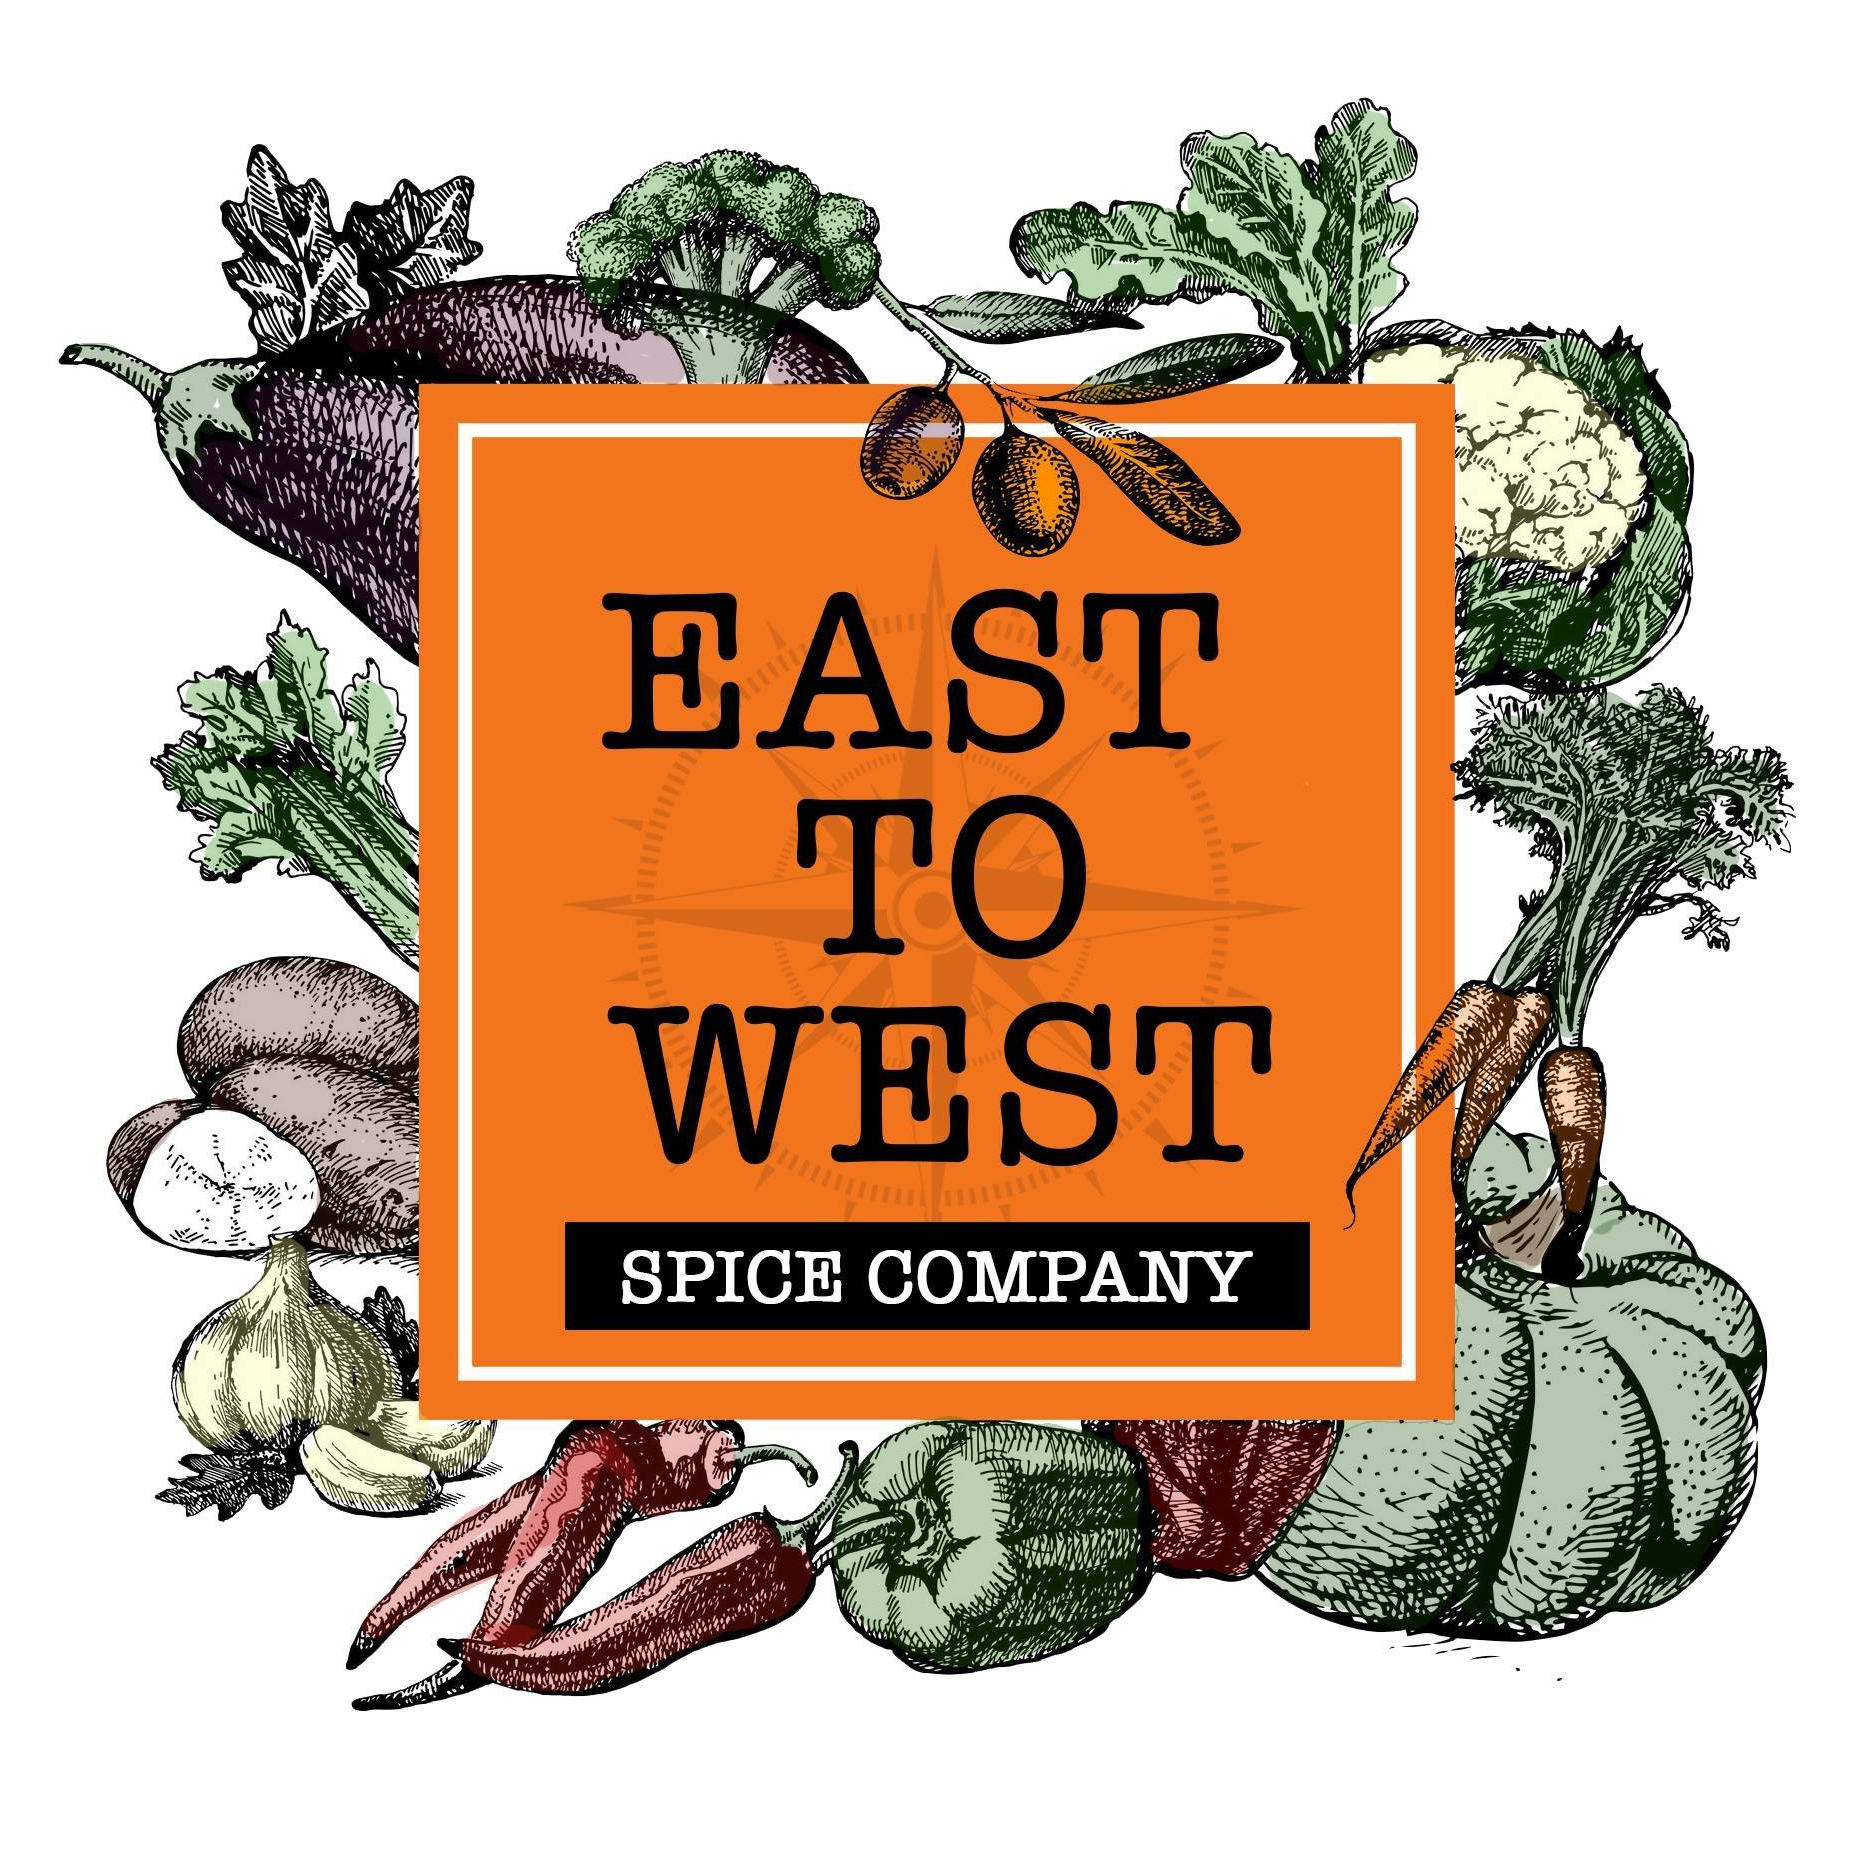 East to West Spice Company